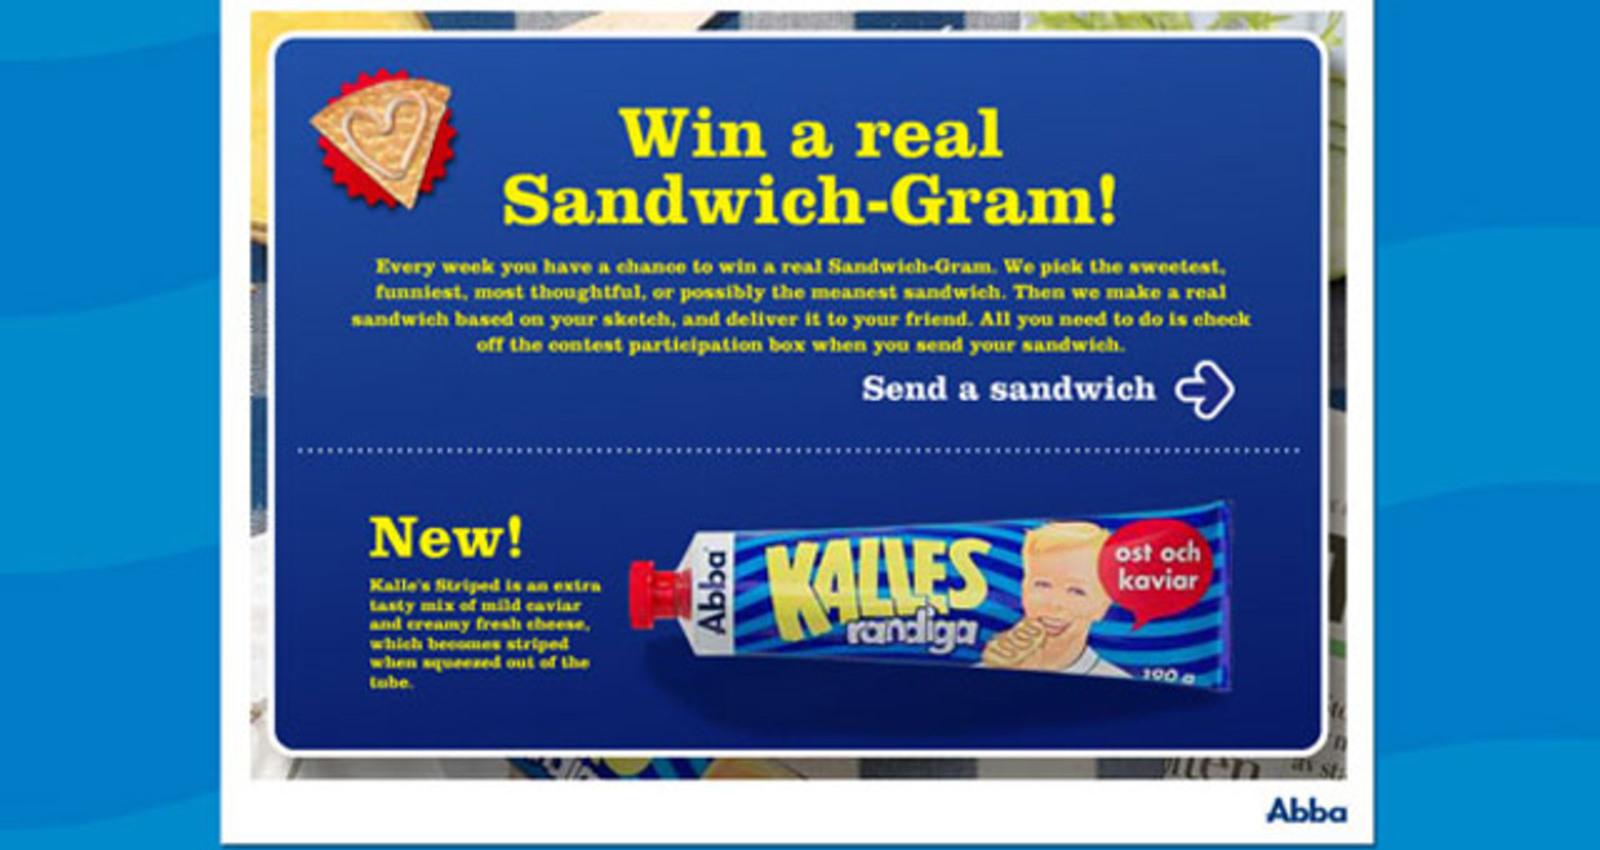 KALLES-WIN A REAL SANDWICH-GRAM!